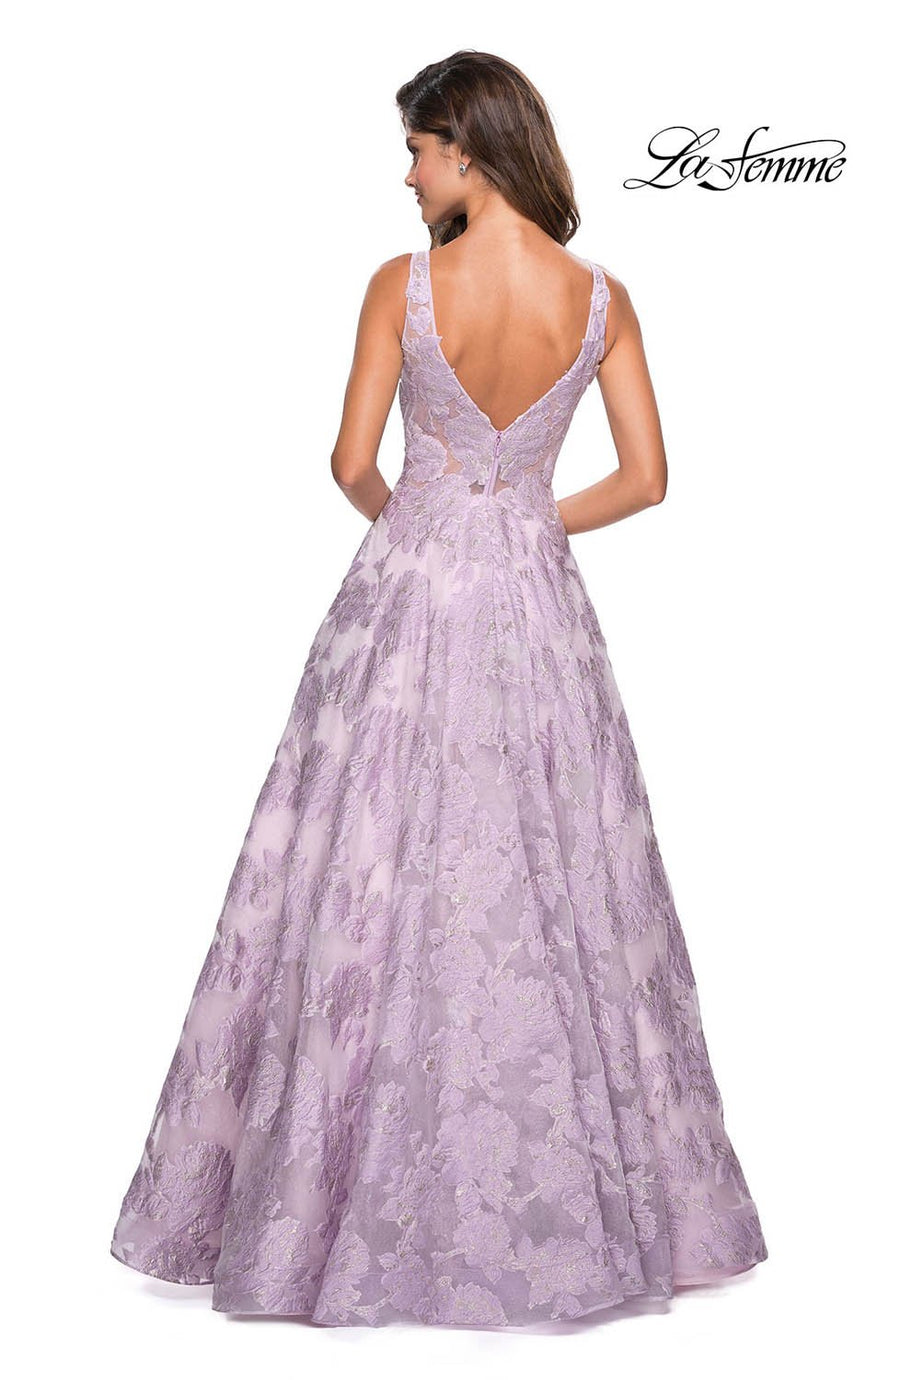 La Femme 27505 prom dress images.  La Femme 27505 is available in these colors: Lavender, Light Pink, Silver.